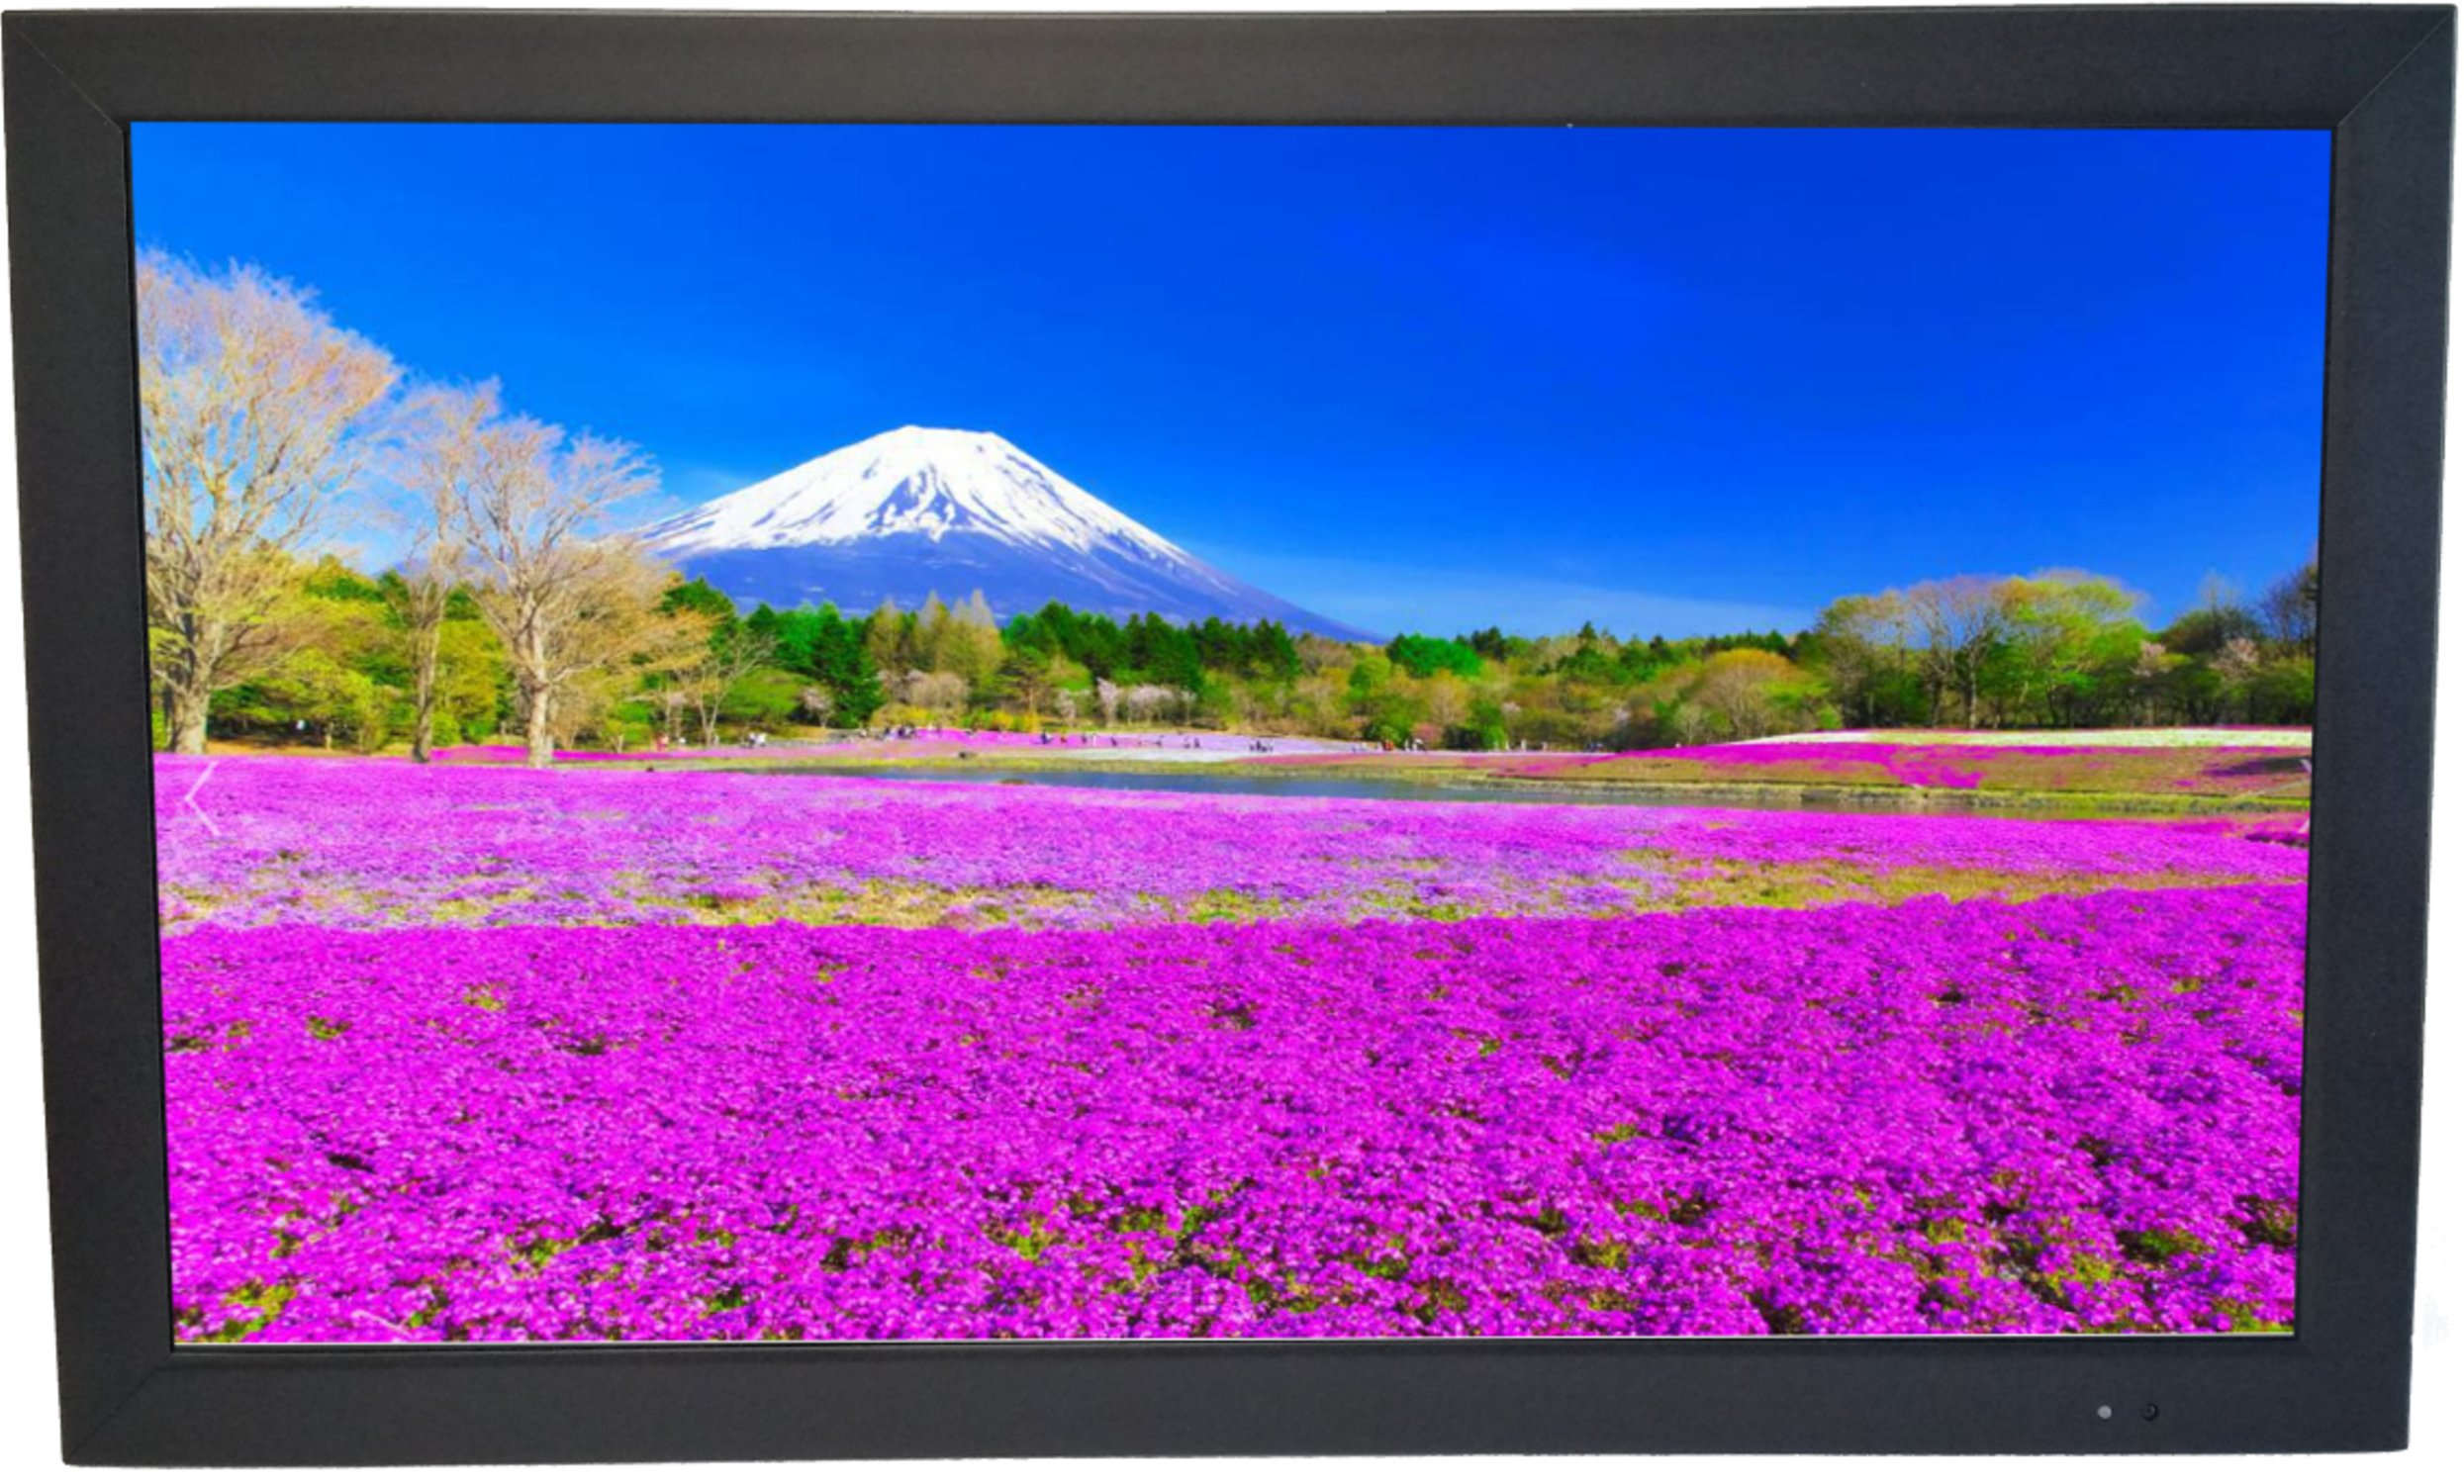 ViewEra V215HBM TFT LCD Security Monitor 21.5'' Screen Size, VGA, 2x HDMI In, 1x USB In, 1x BNC In, Resolution 1920 x 1080, Brightness 250, Contrast Ratio 1000:1, Response Time 5ms, Built-In Speaker